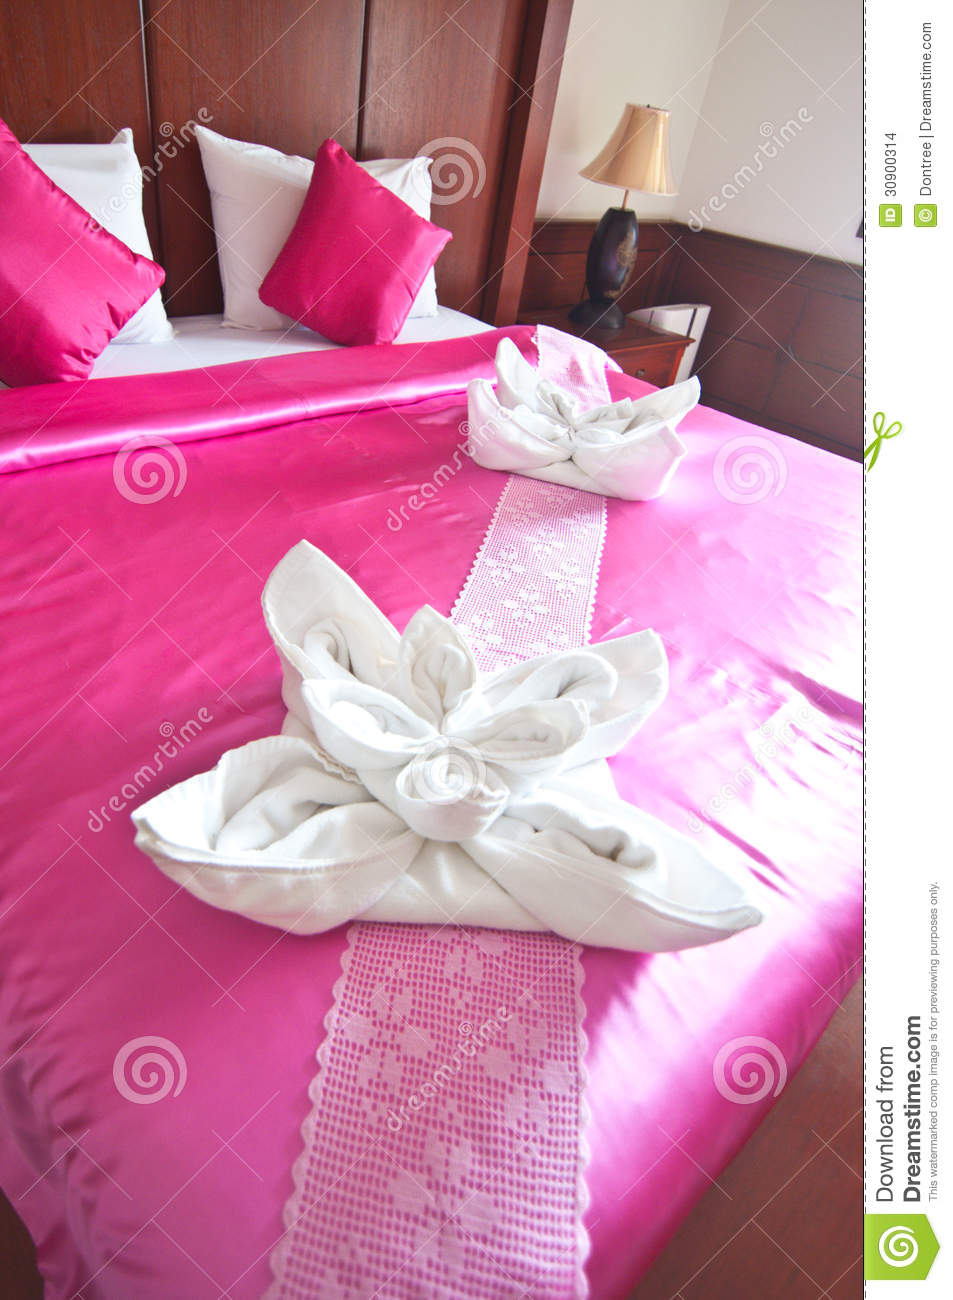 towel flowers on the bed stock images - image: 30900314